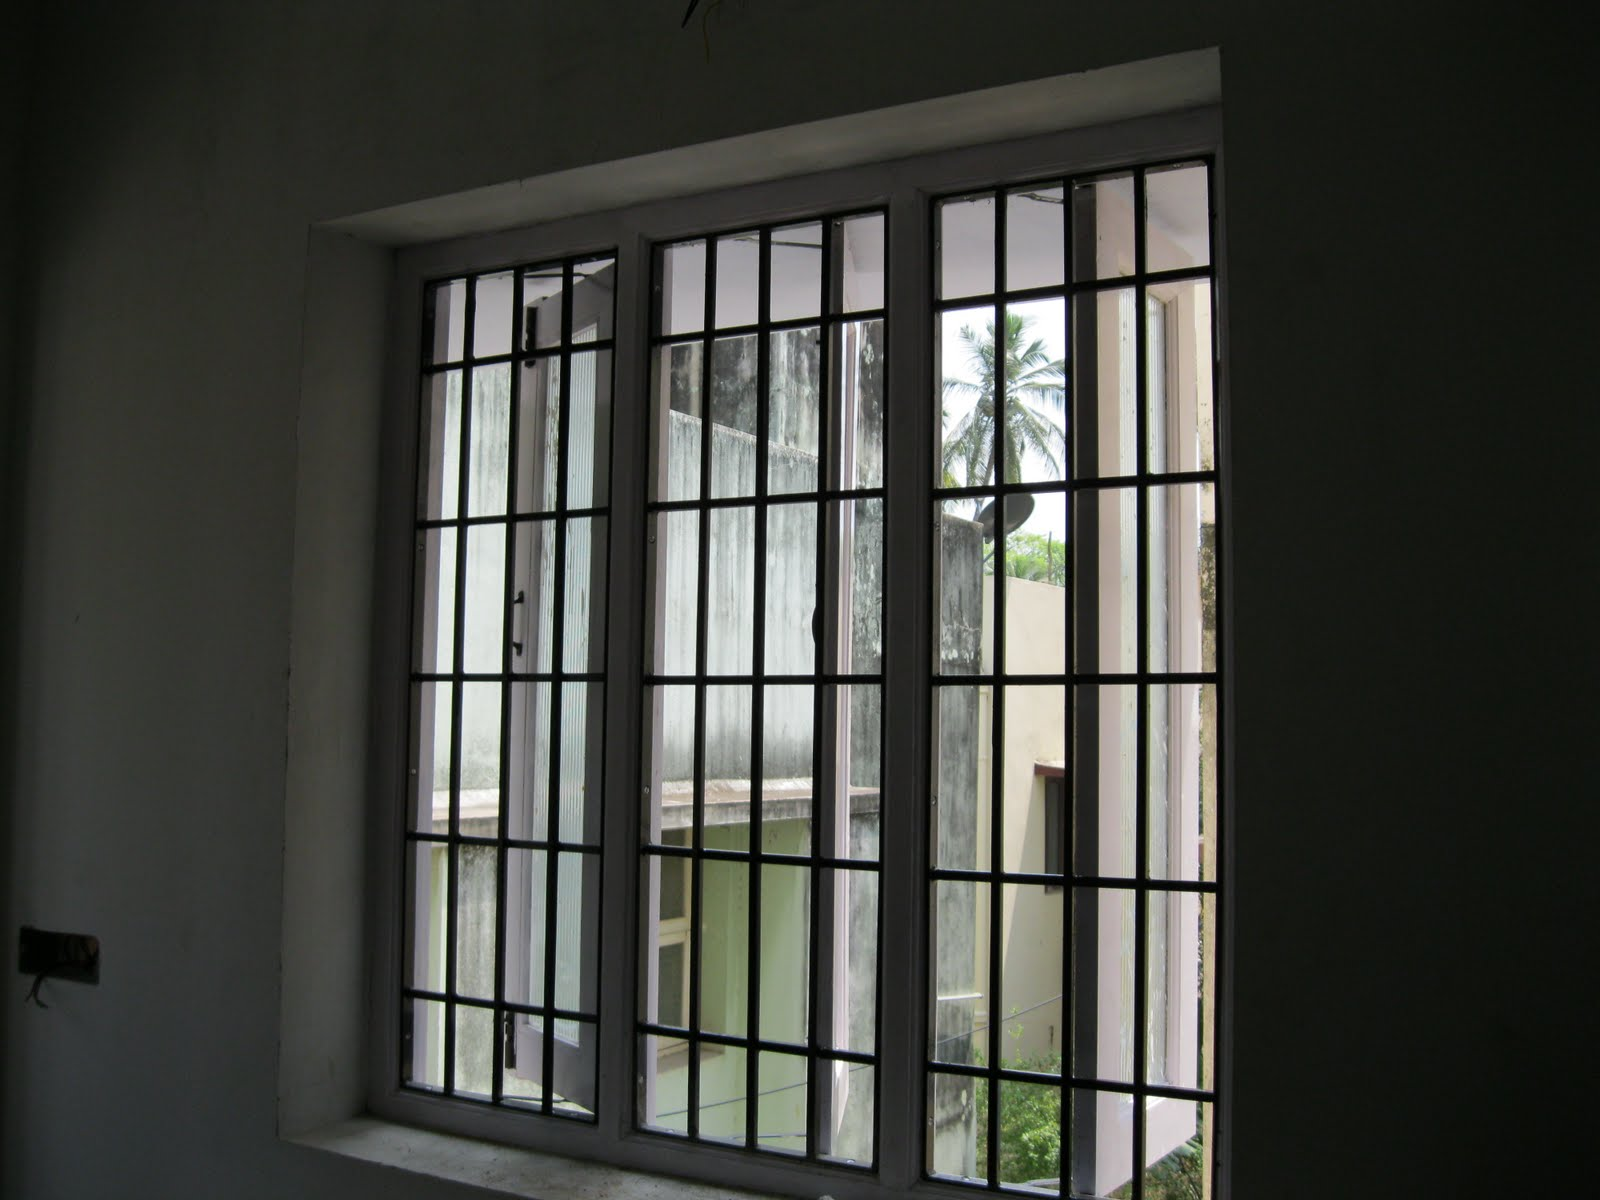 Window grill design photos in kerala joy studio design for Modern zen window grills design